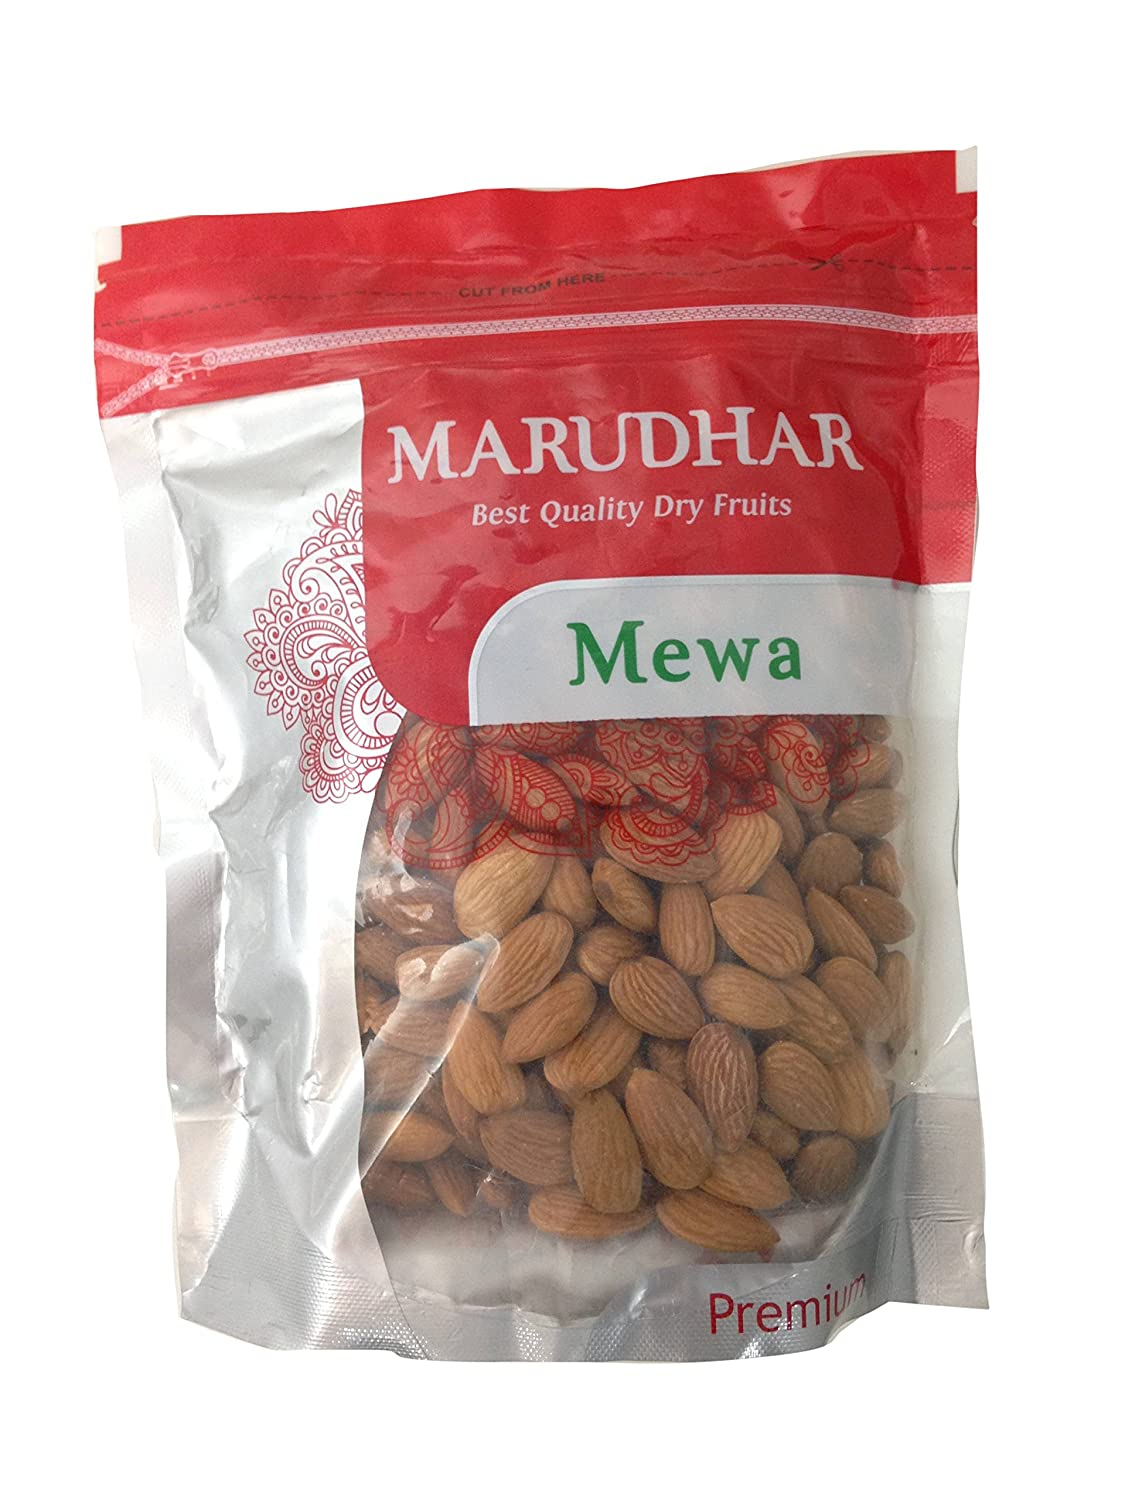 Marudhar Mewa Dry Fruits - Almonds, 500g Pack: Amazon in